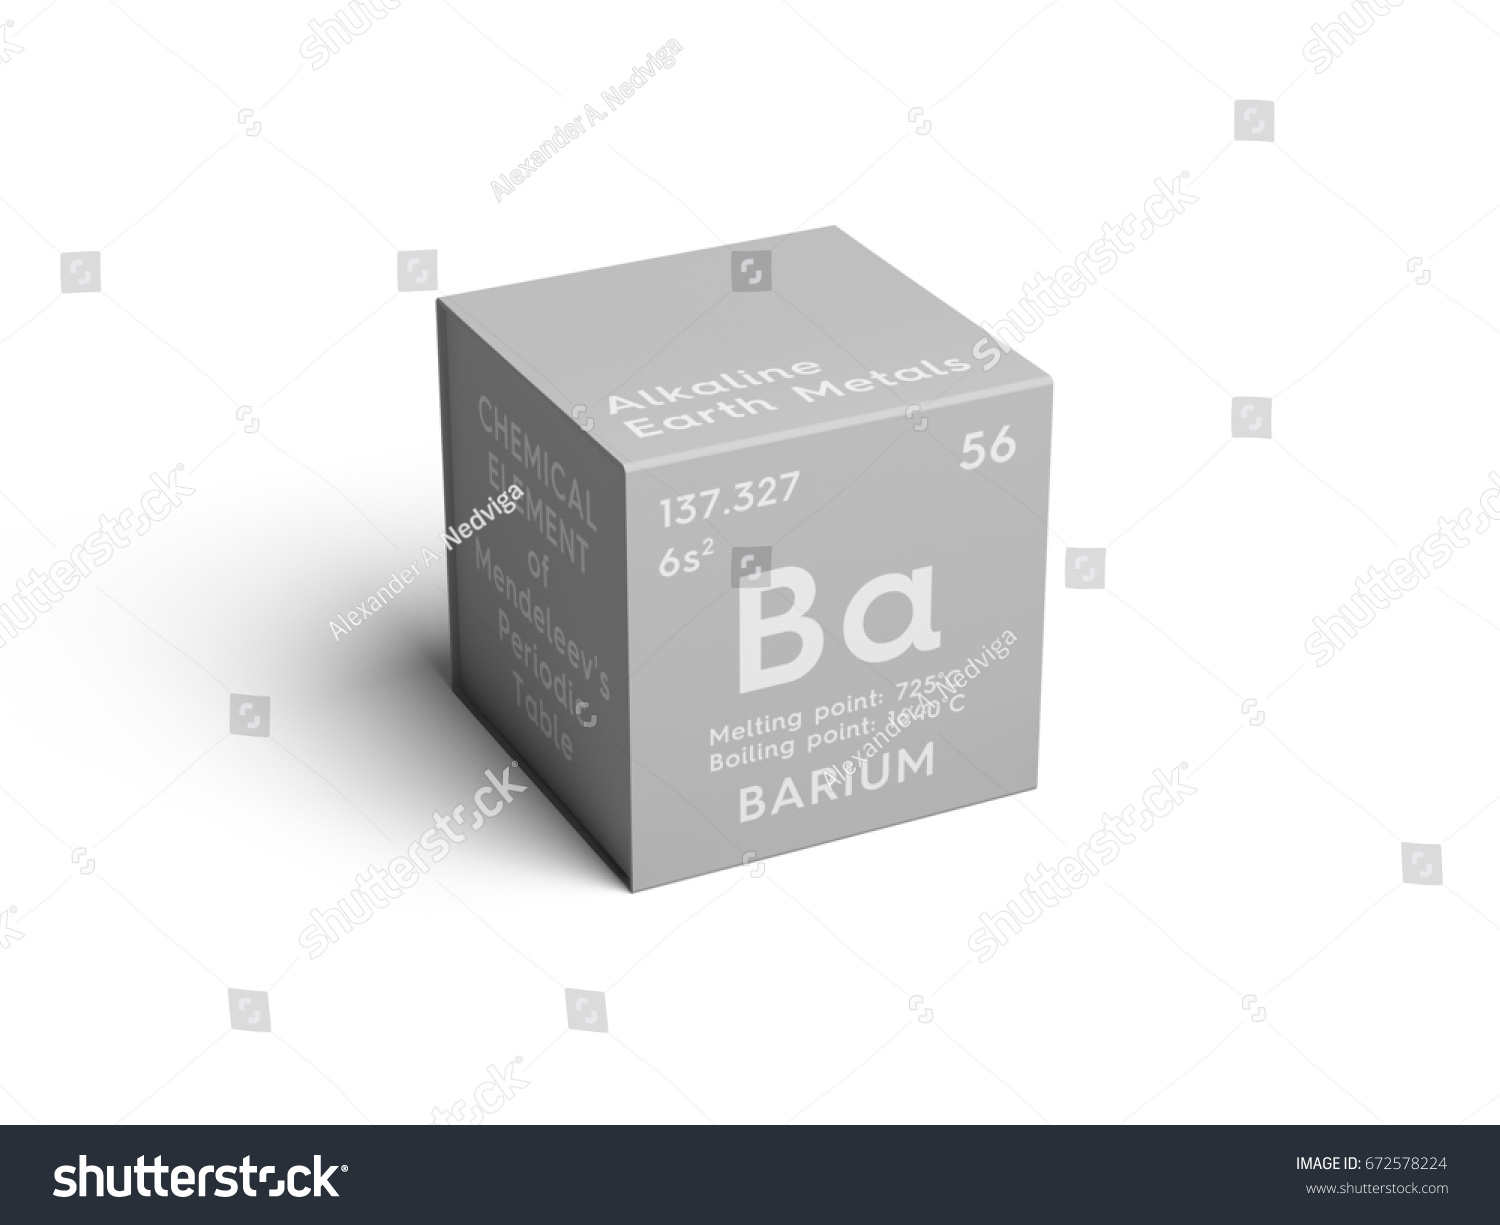 Element 56 periodic table image collections periodic table images periodic table barium images periodic table images barium alkaline earth metals chemical element stock illustration barium gamestrikefo Image collections